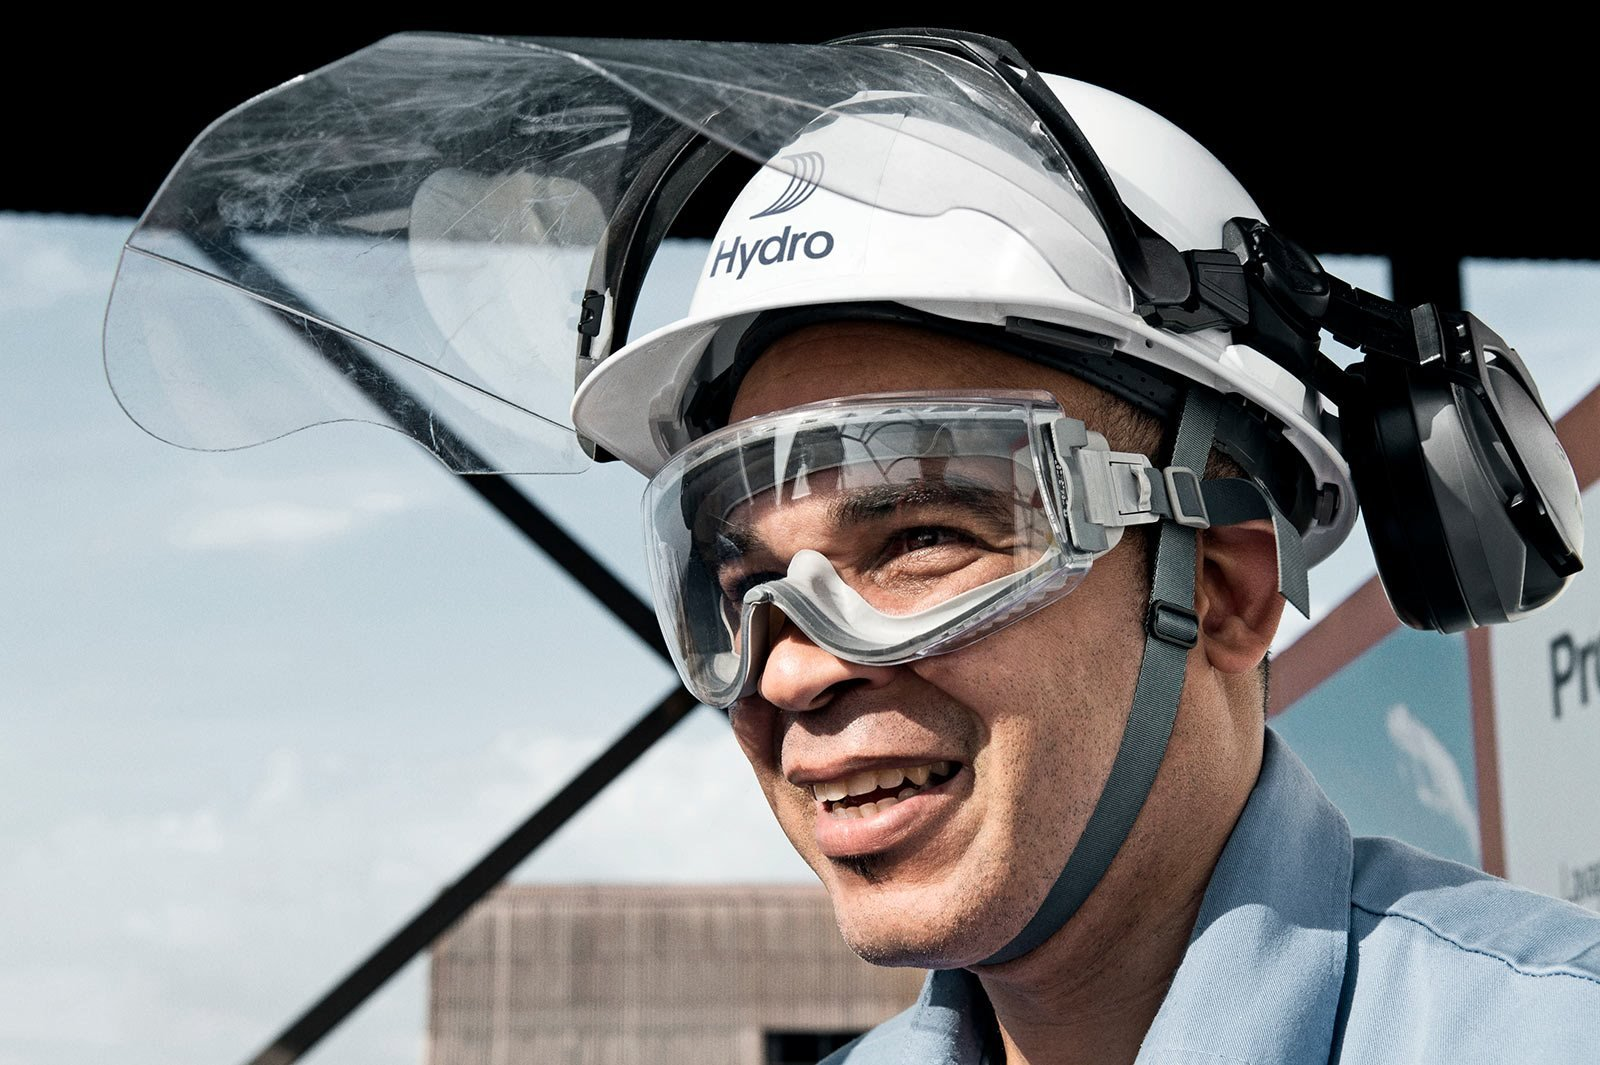 Man in safety helmet with Hydro logo